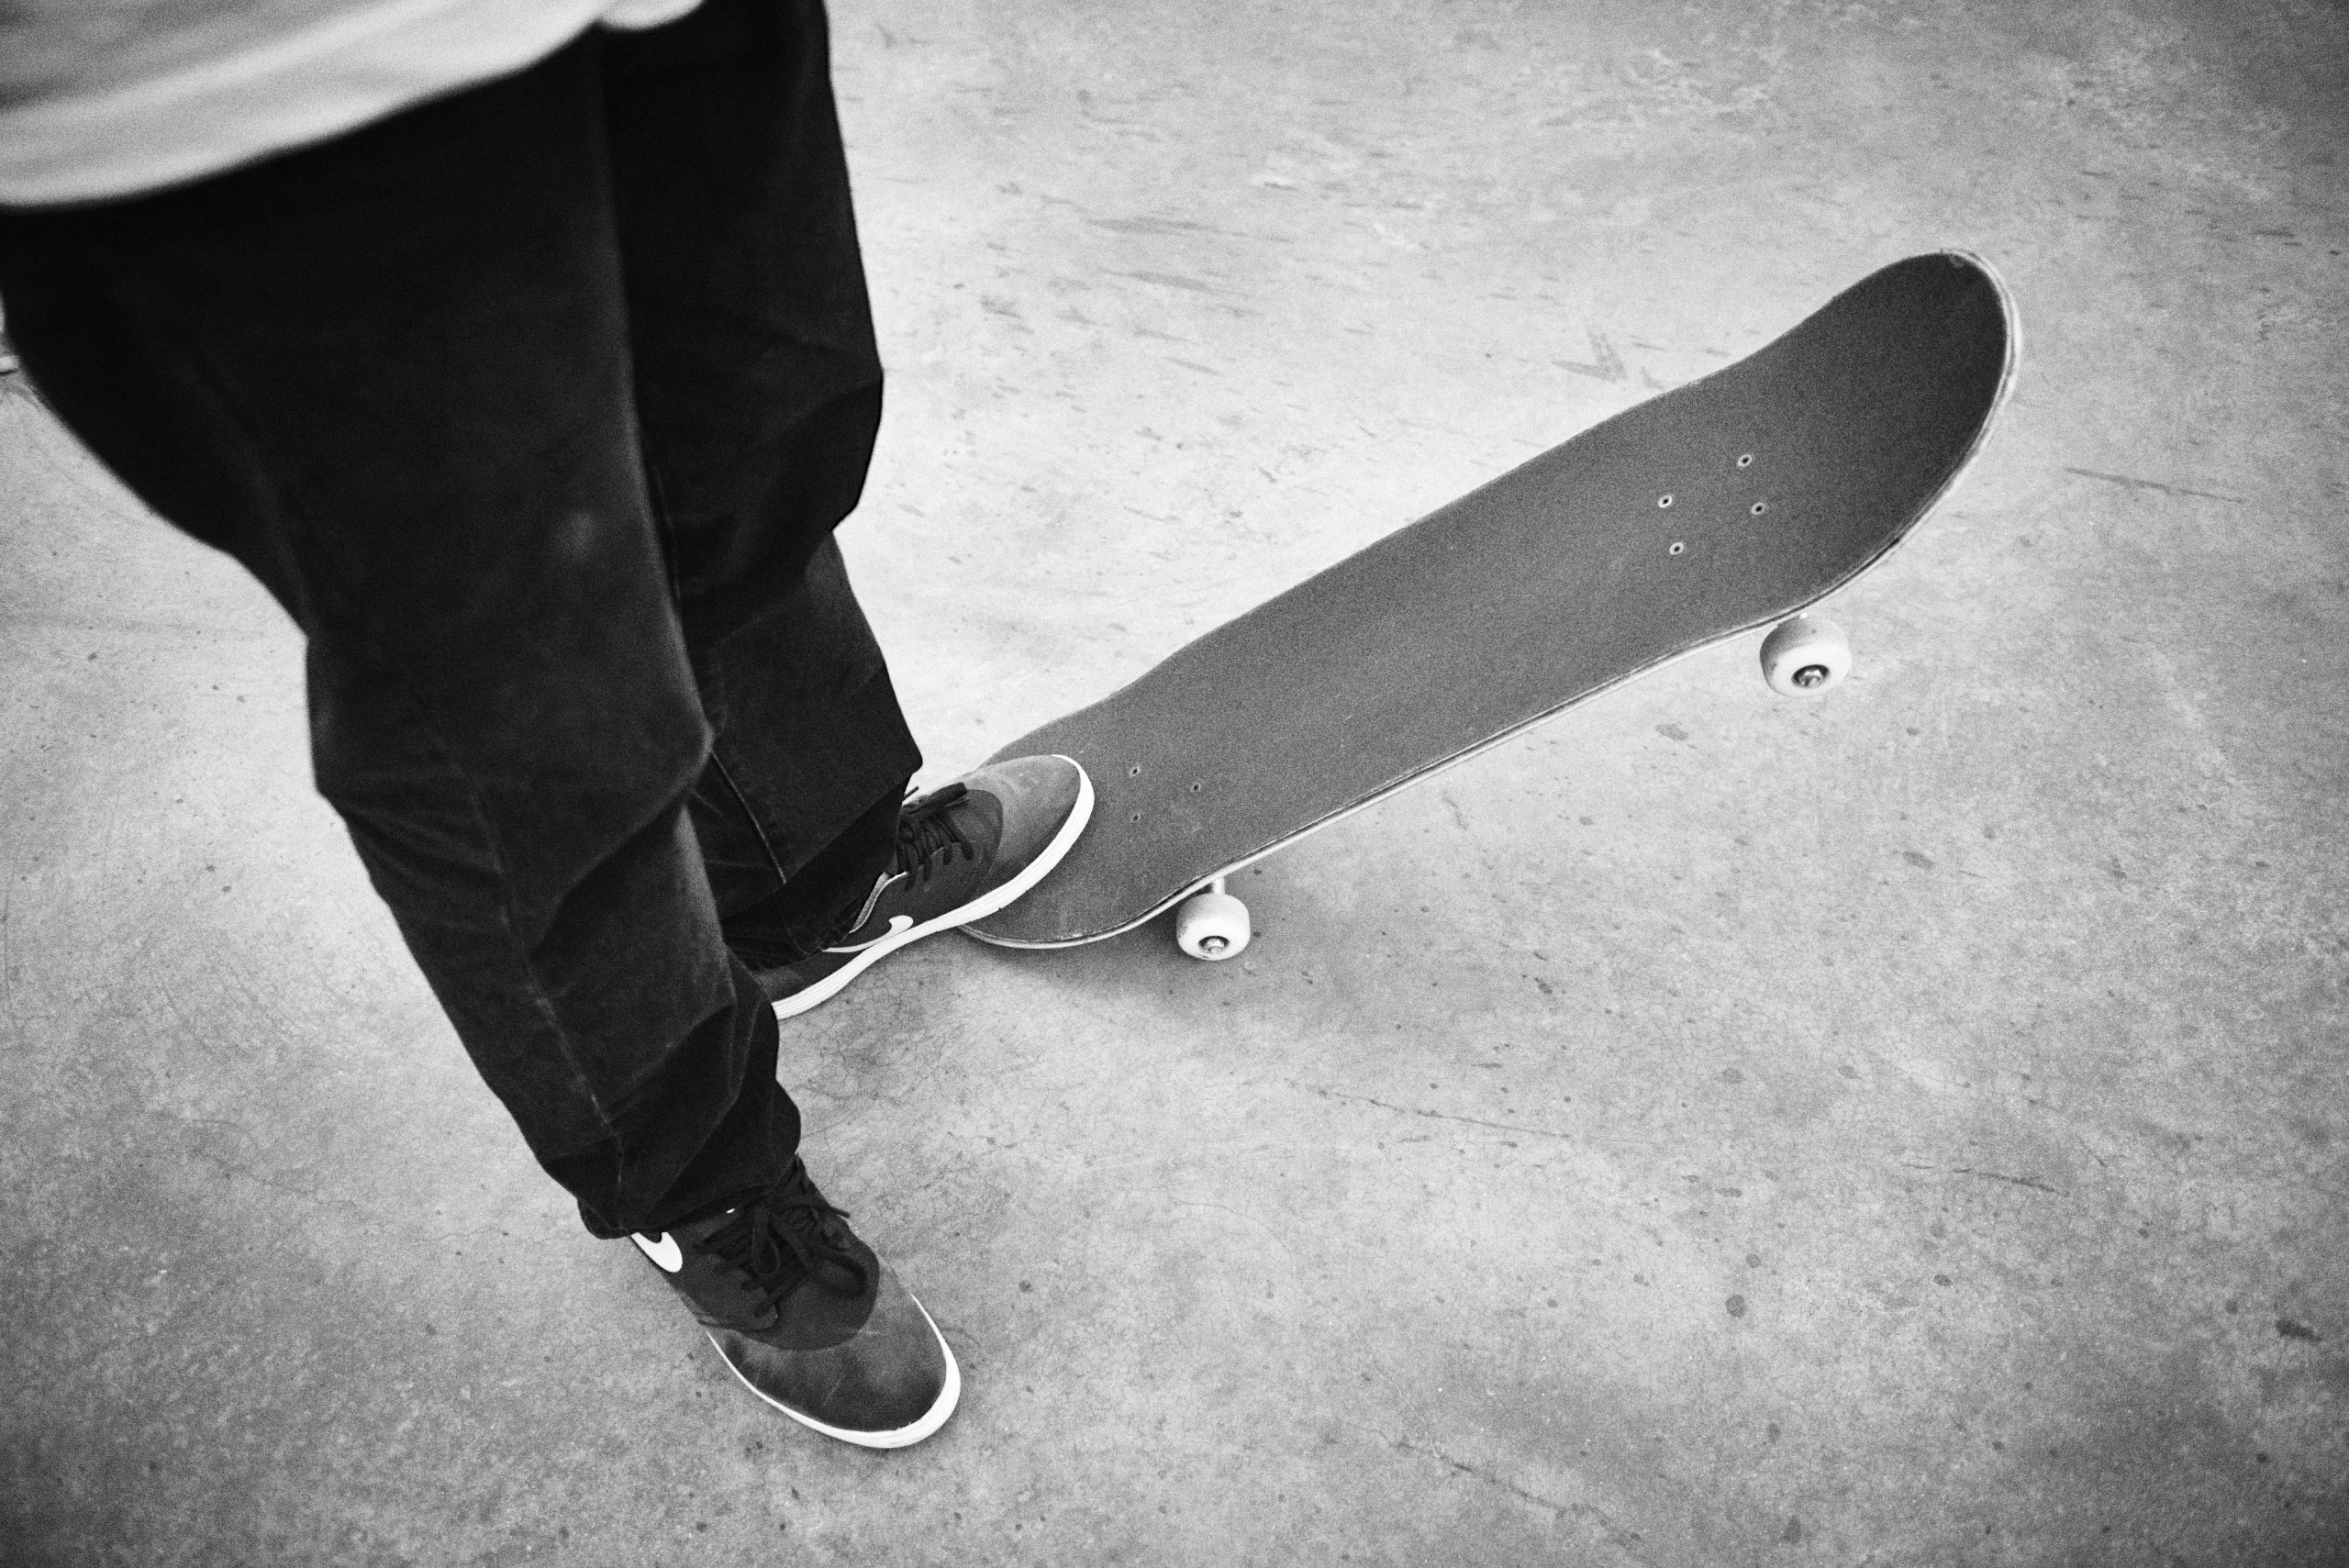 Brixton-skate-park-Matt-Stansfield-Lifestyle-Youth-Culture_22